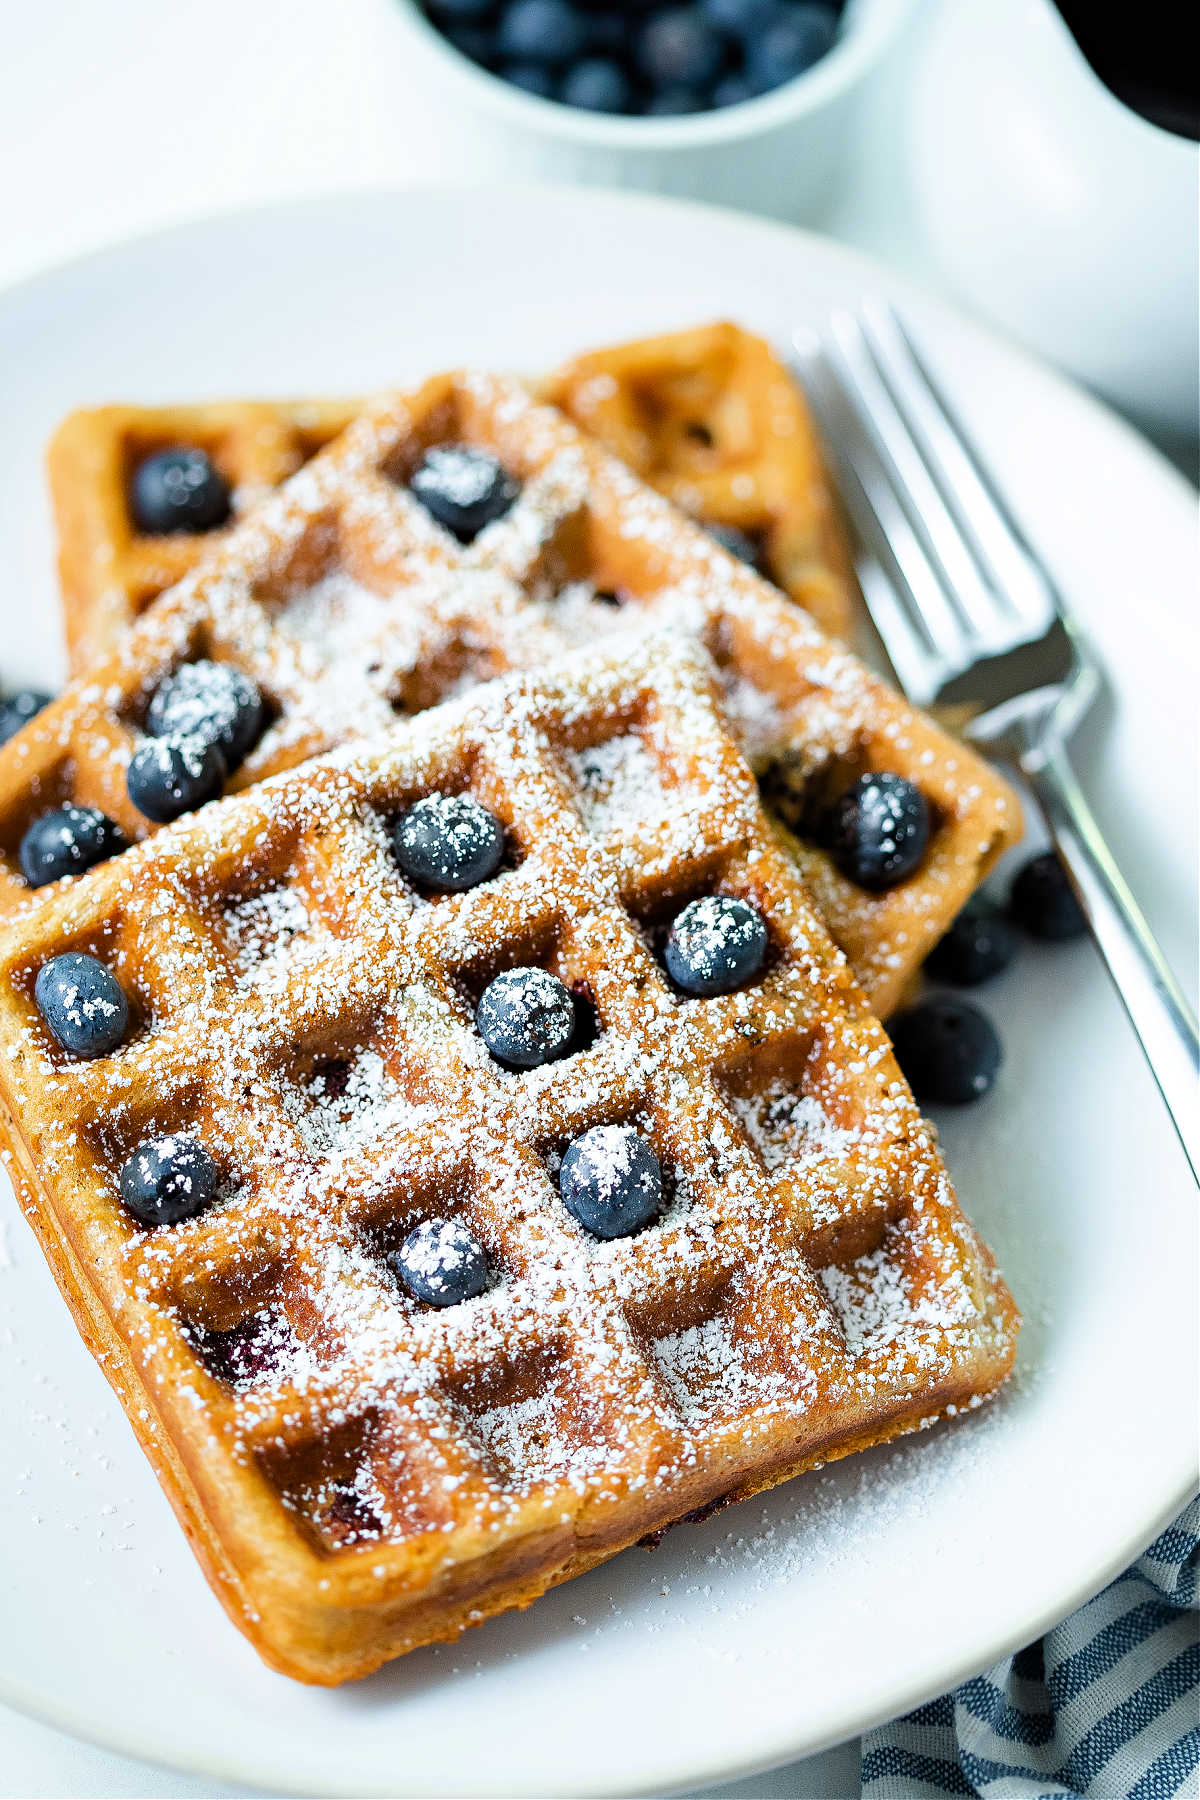 three blueberry waffles on a white plate with a fork to the side.